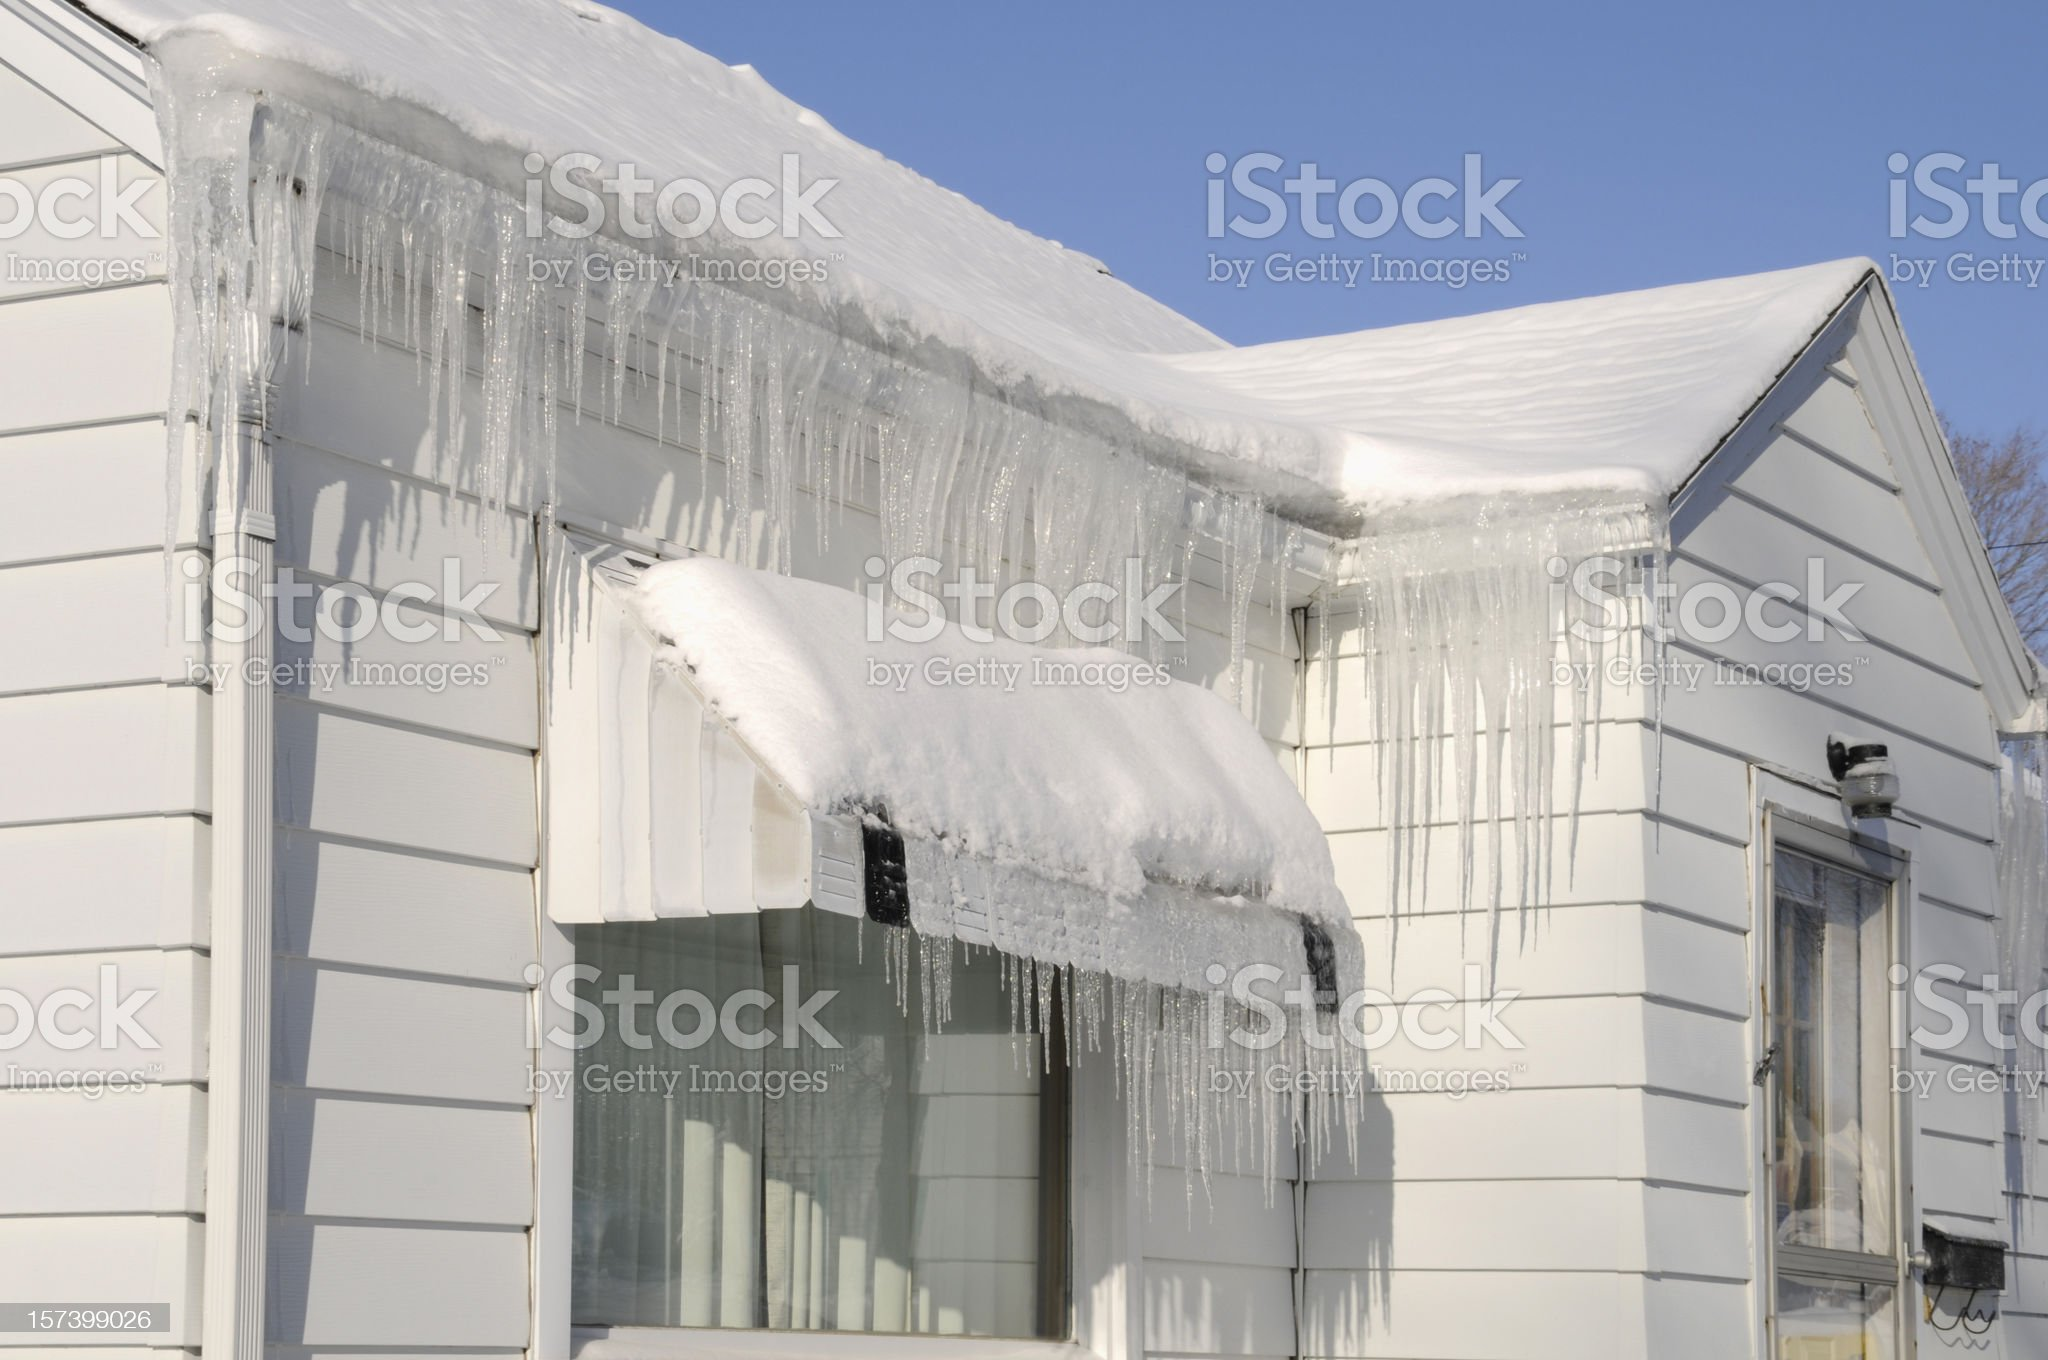 Extreme Icicles, Snow, House Roof After Winter Blizzard; Weather Damage royalty-free stock photo